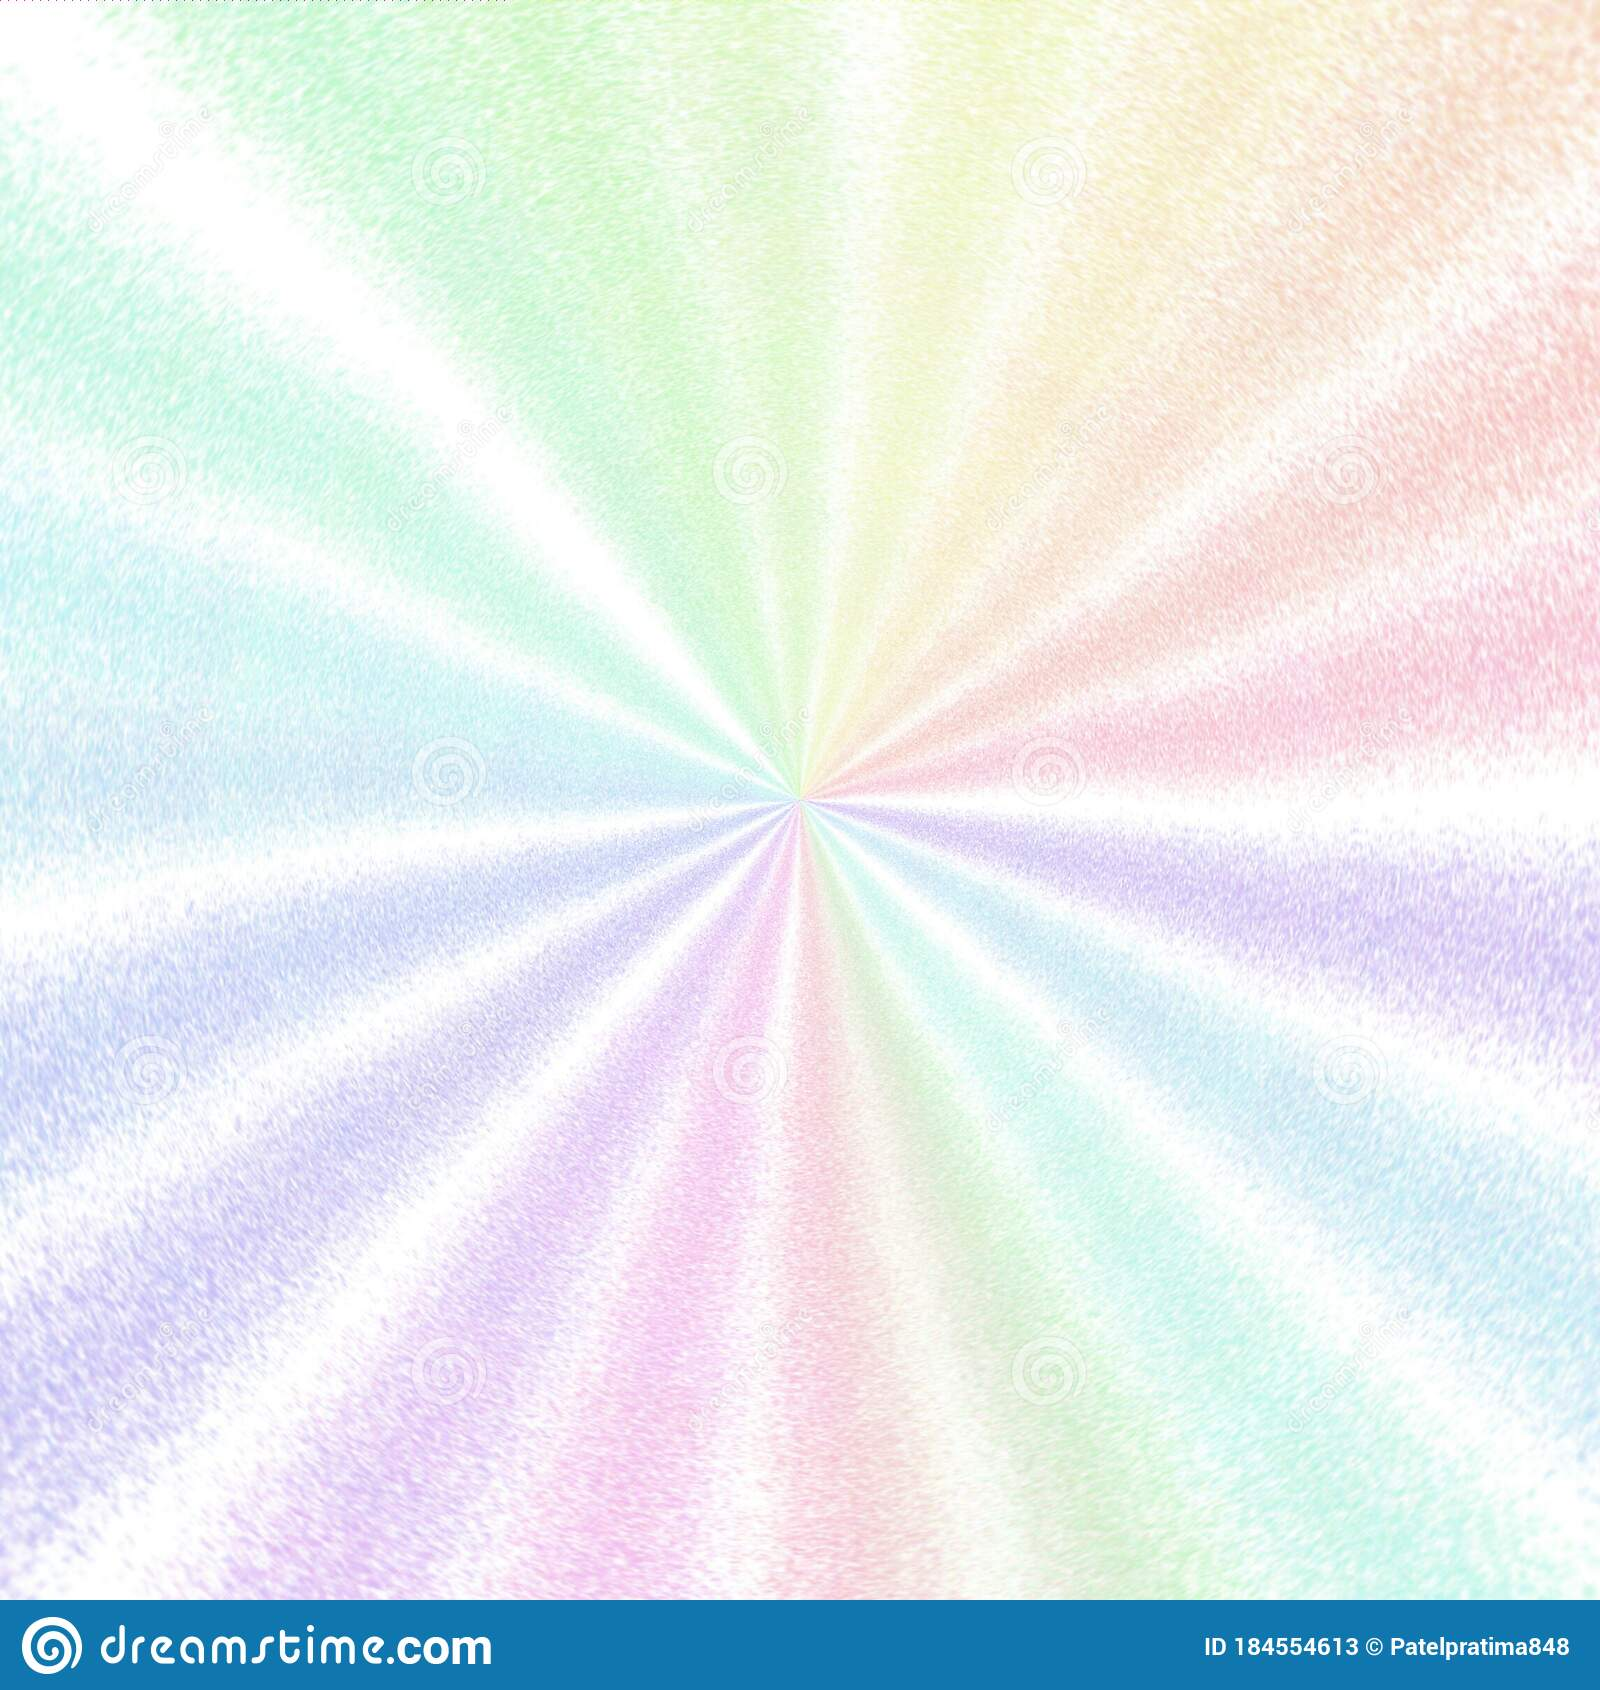 Pastel Rainbow Shape Pattern Sparkle Drawn On Abstract Background Illusion Effect Graphic Design Illustration Wallpaper Stock Illustration Illustration Of Background Wallpaper 184554613